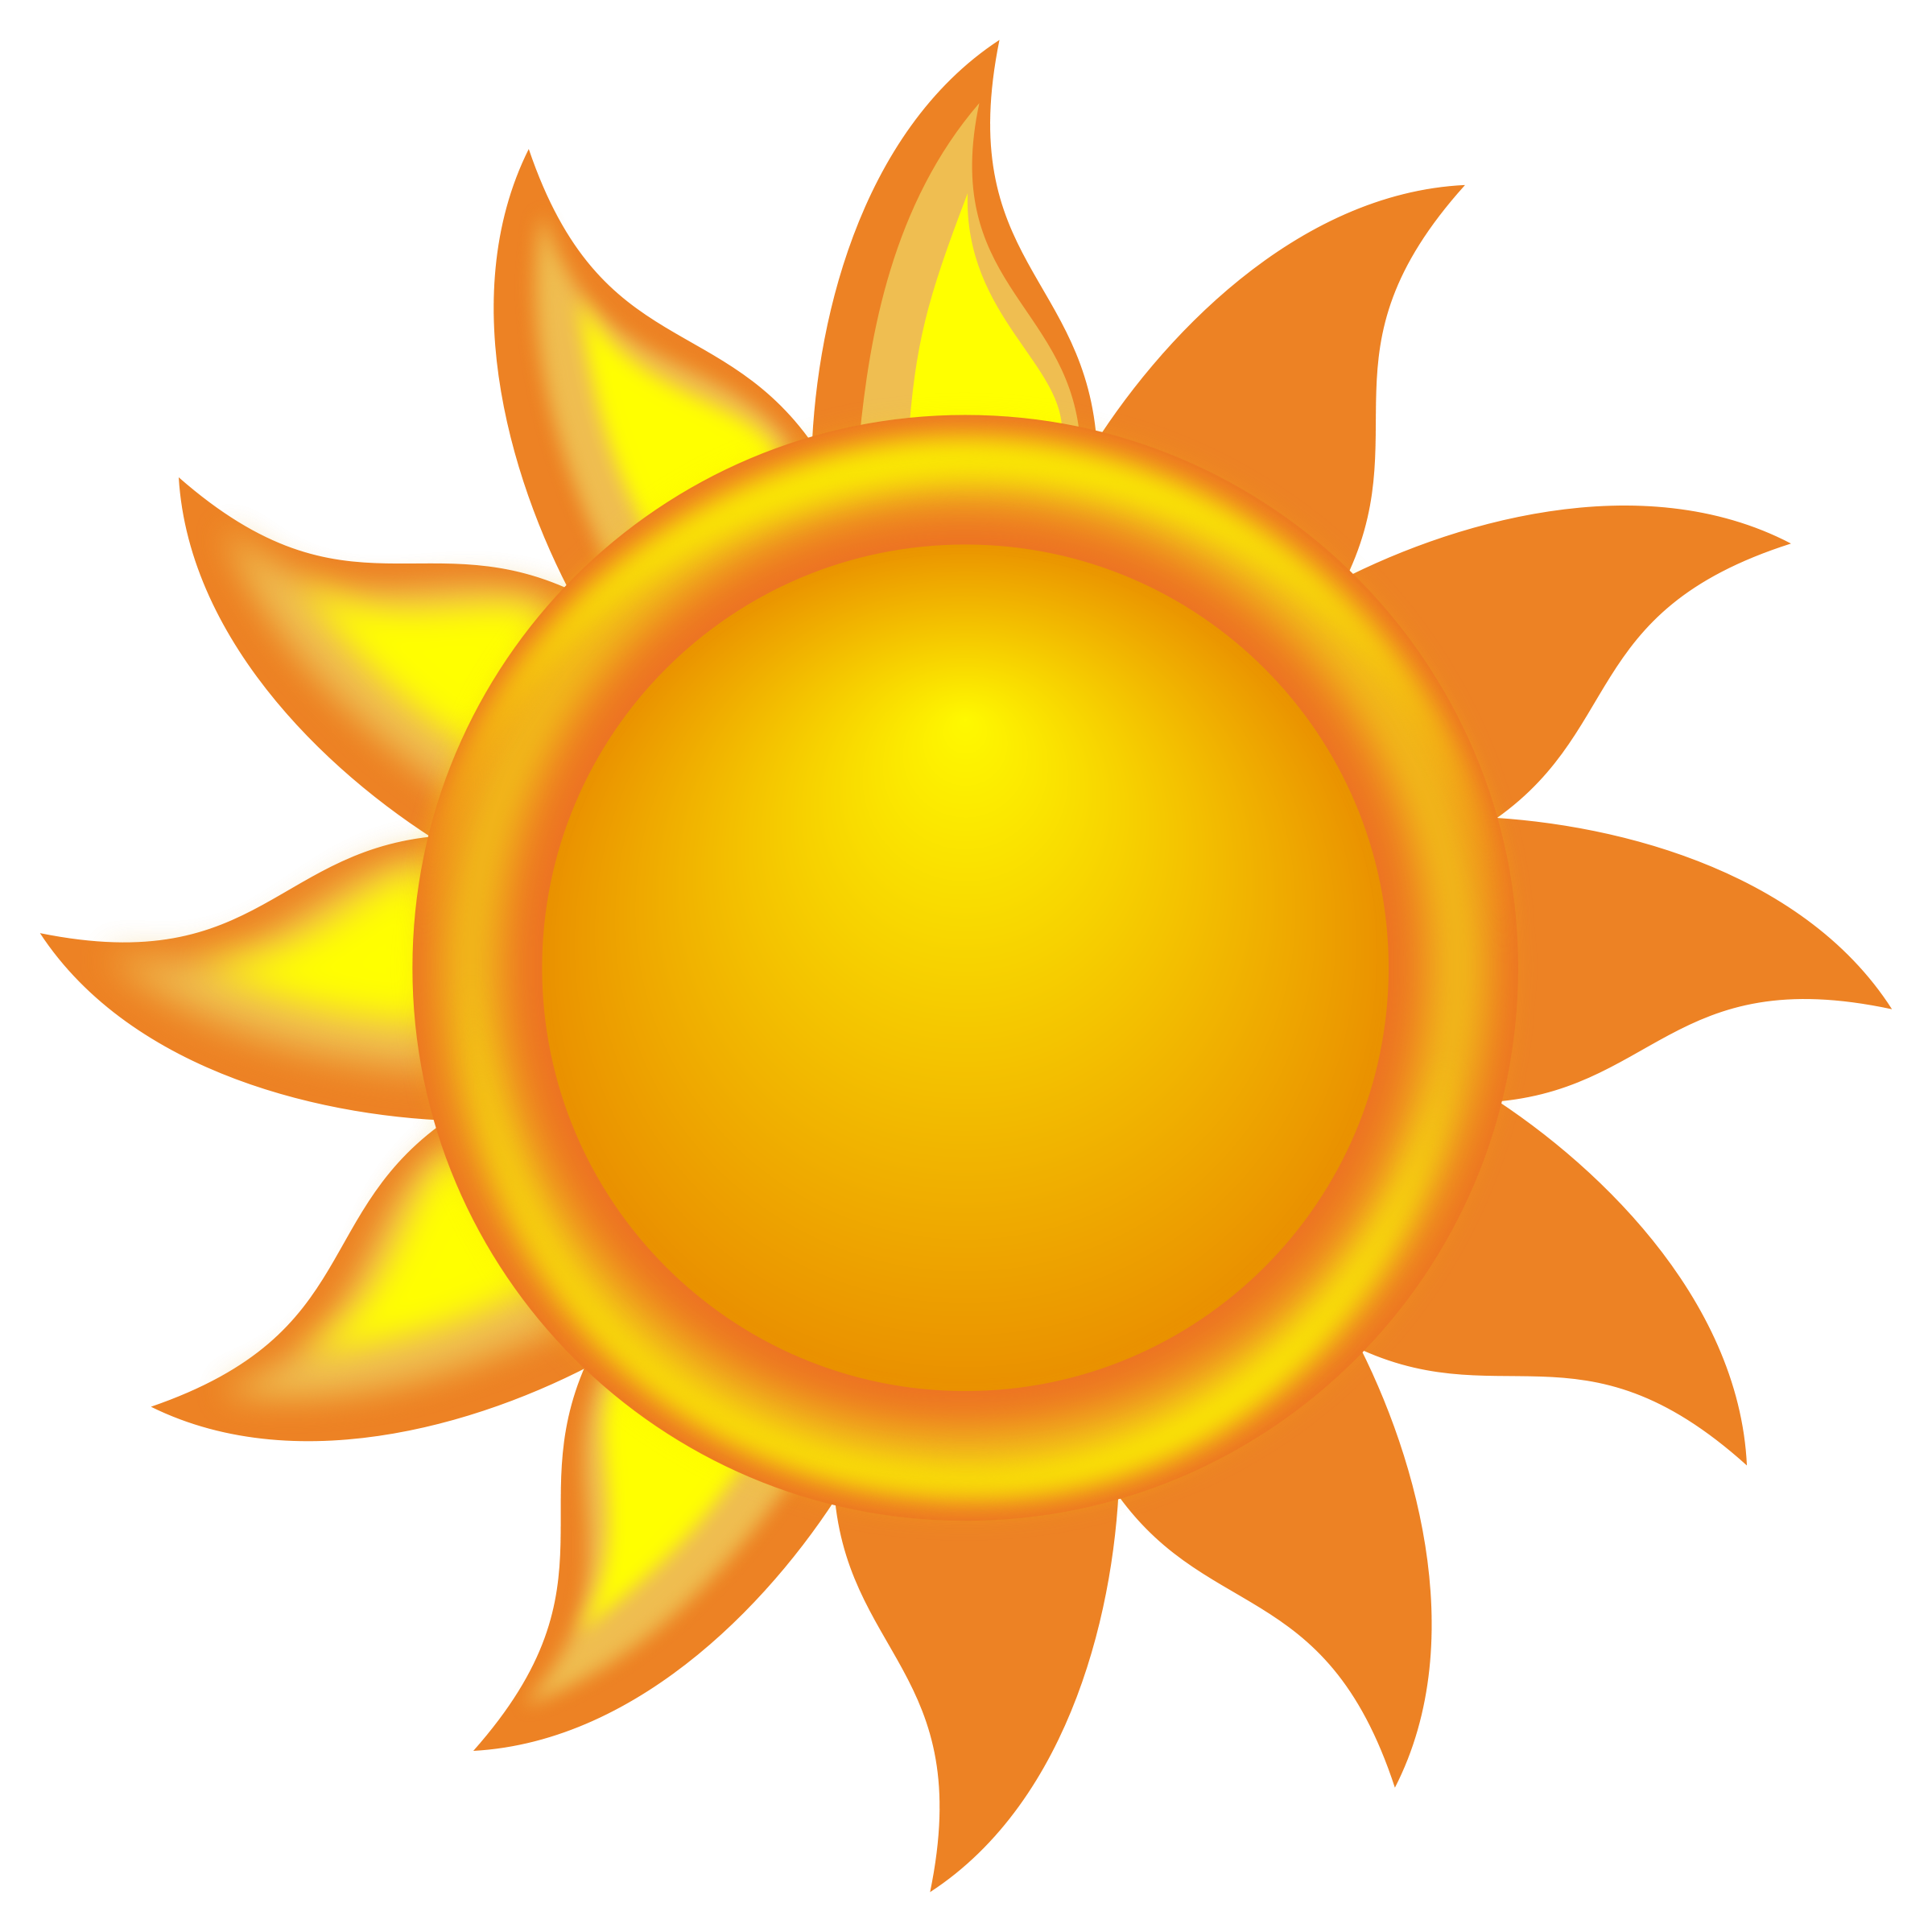 Sun Png PNG Image - Sun HD PNG